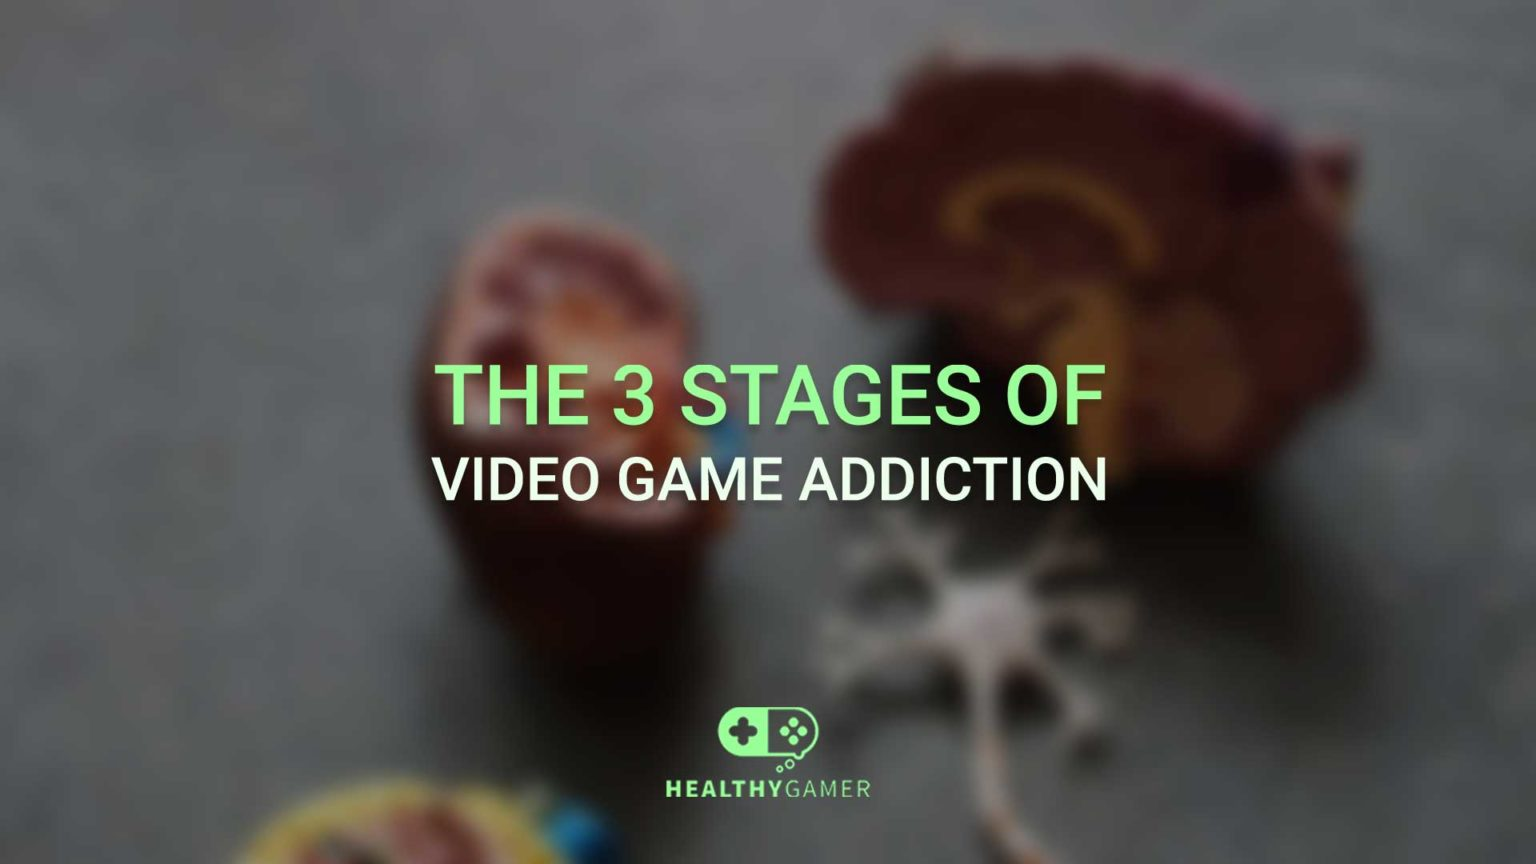 Stages of Video Game Addiction: How Bad Can it Get?